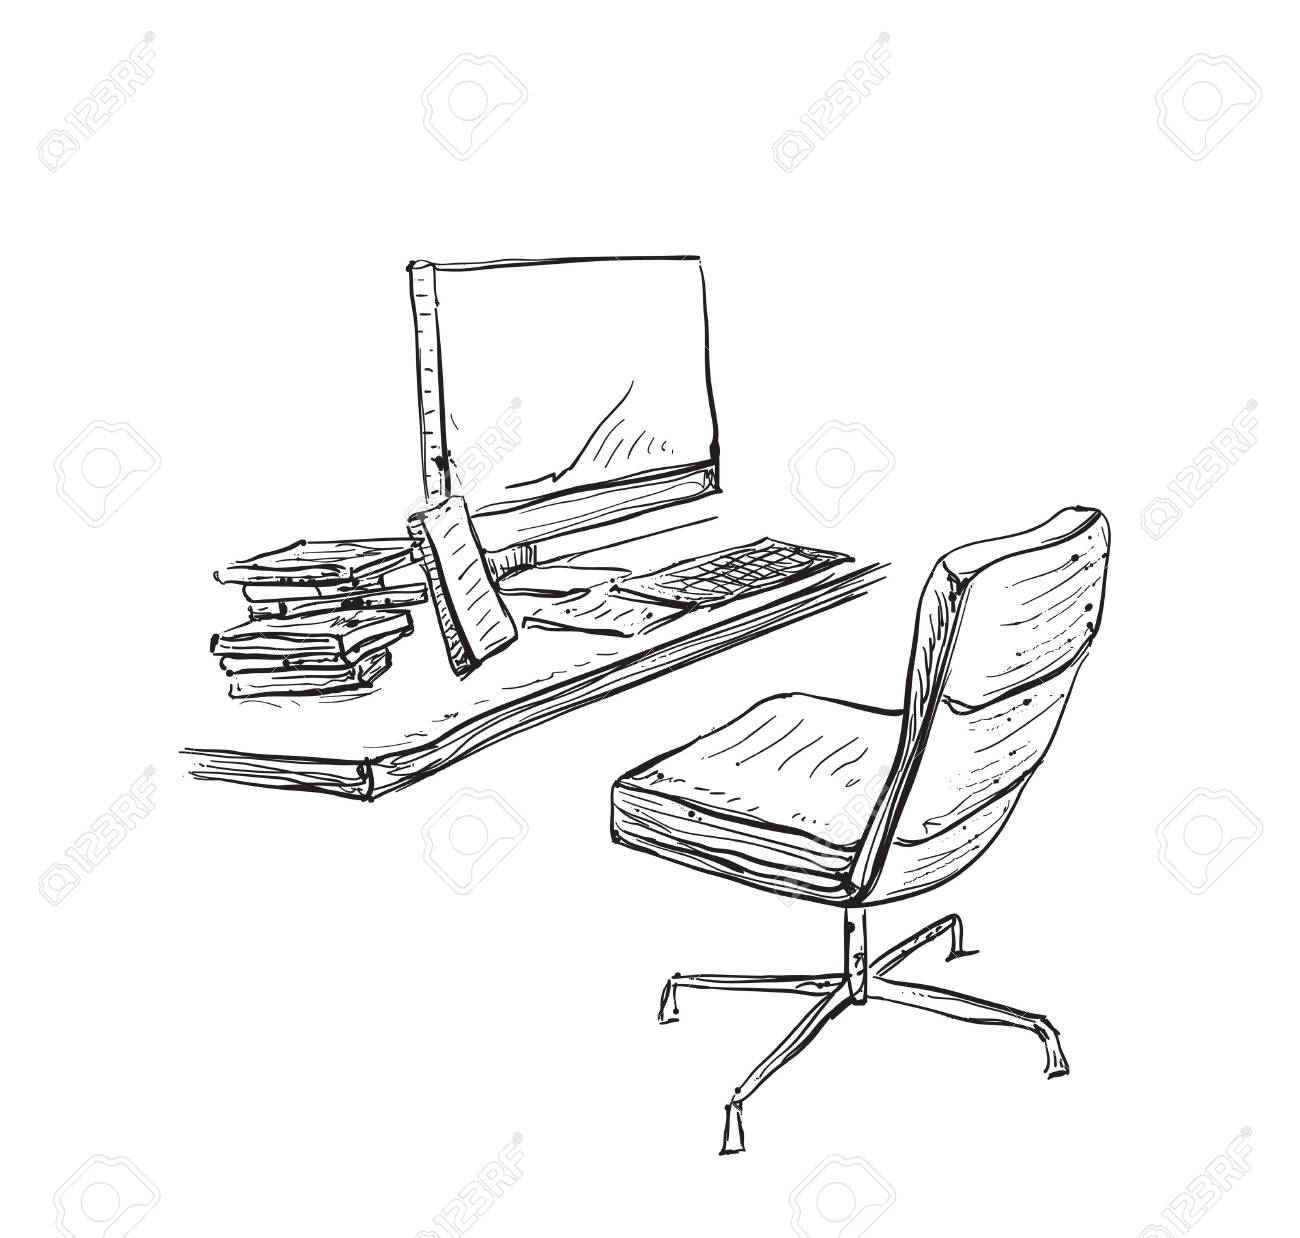 Hand drawn workplace. Chair and computer sketch